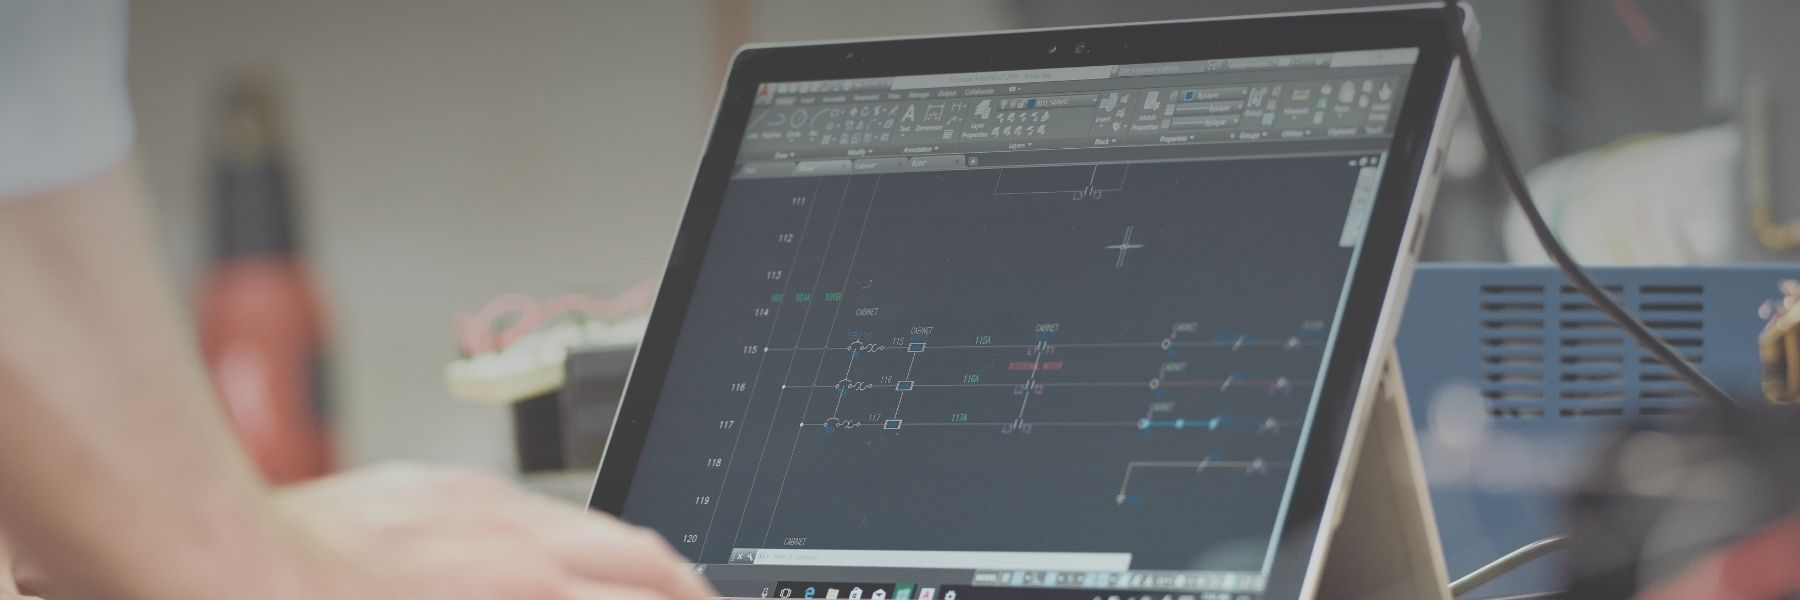 AutoCAD 2022 What's New